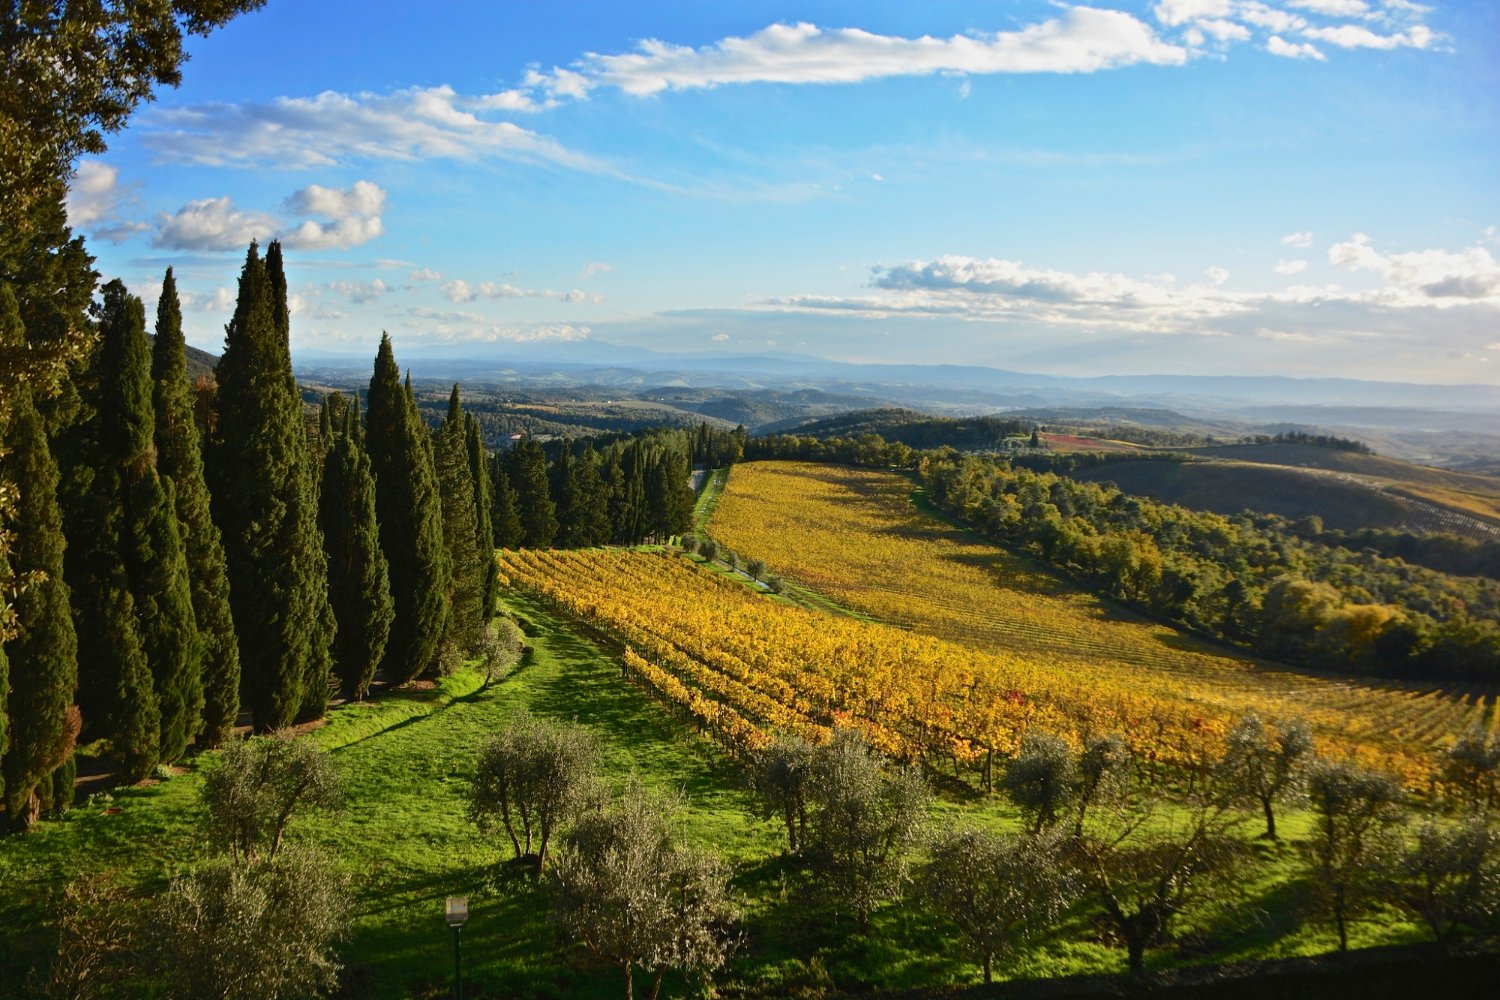 Chianti countryside